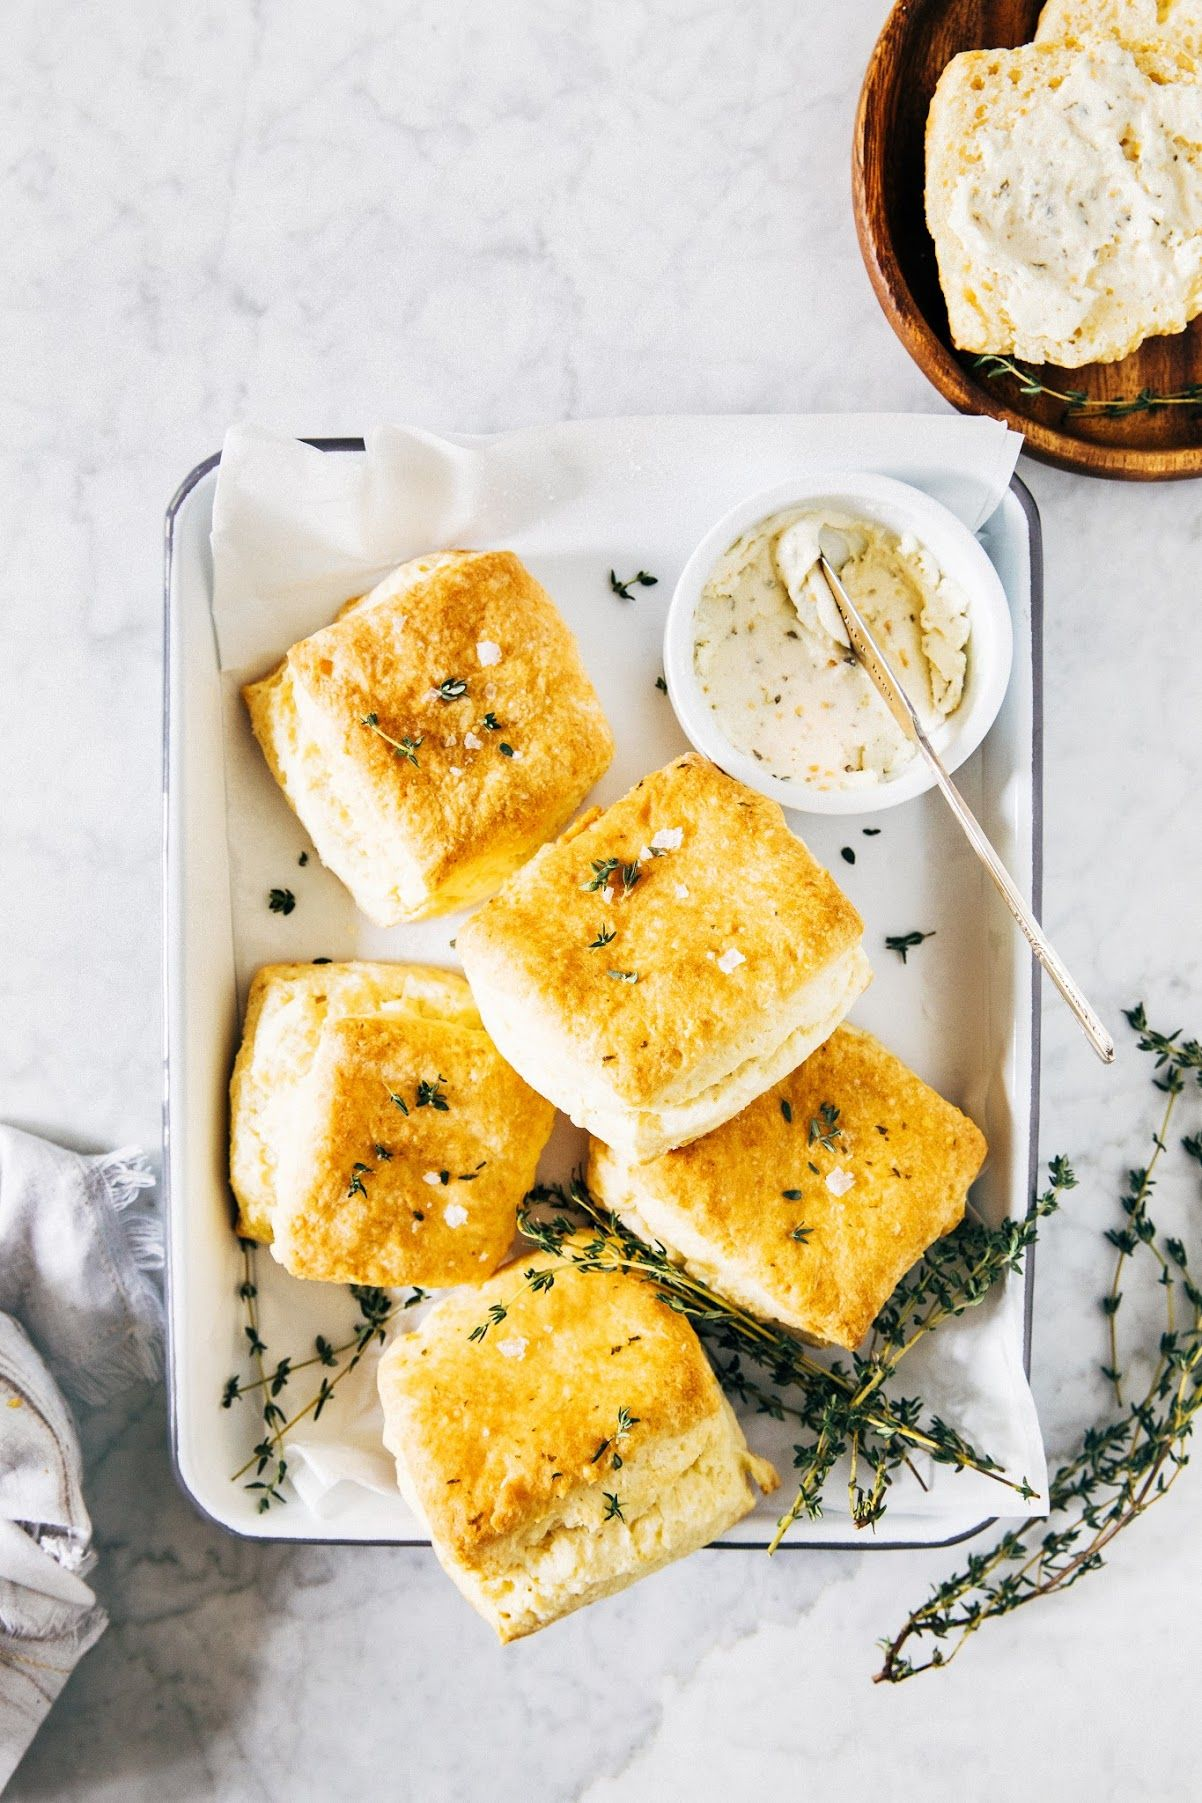 Garlic And Herb Buttermilk Biscuits Or How I Learned To Stop Worrying And Love The Biscuit Hummi Food Processor Recipes Buttermilk Biscuits Biscuit Recipe